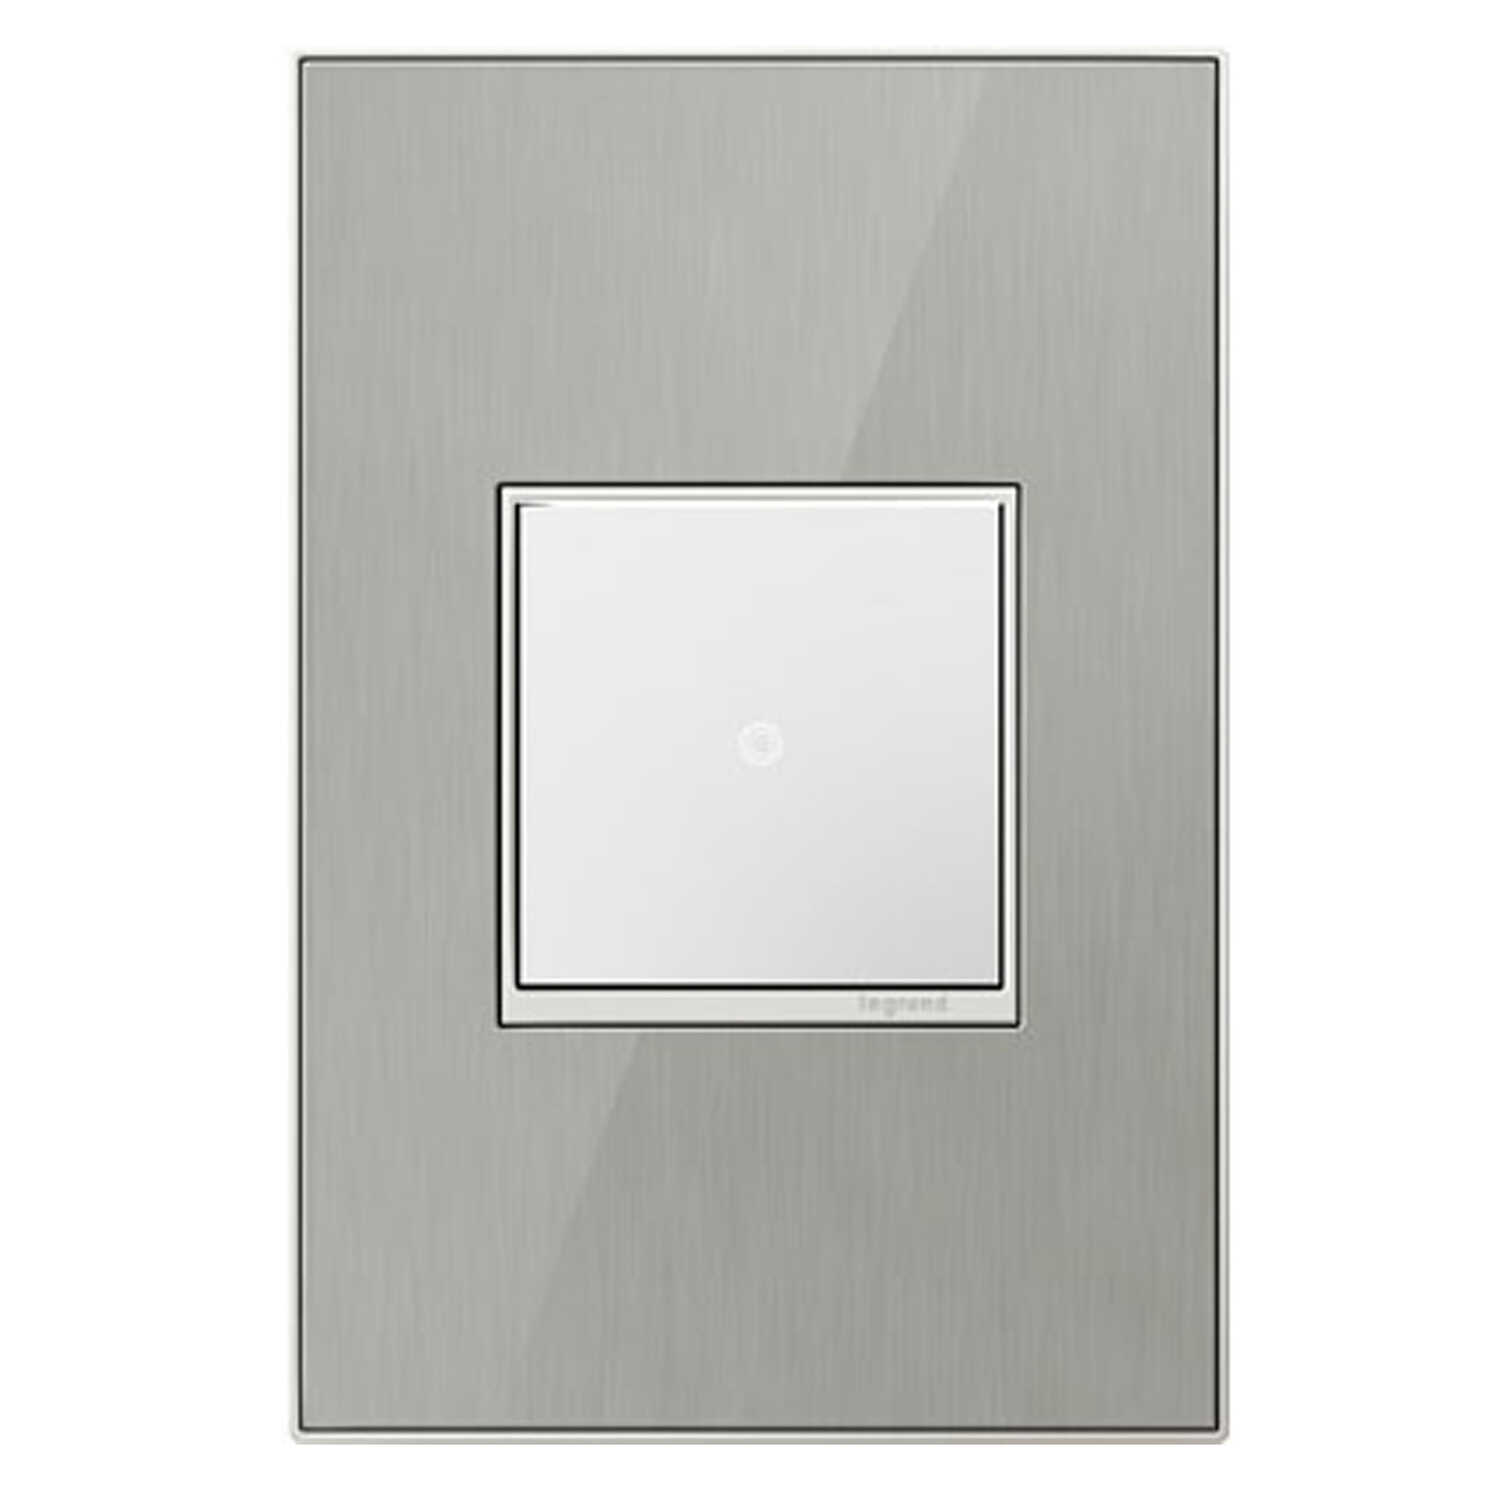 Legrand  Adorne  Metallic  1 gang Thermoplastic Nylon  GFCI/Rocker  1 pk Wall Plate